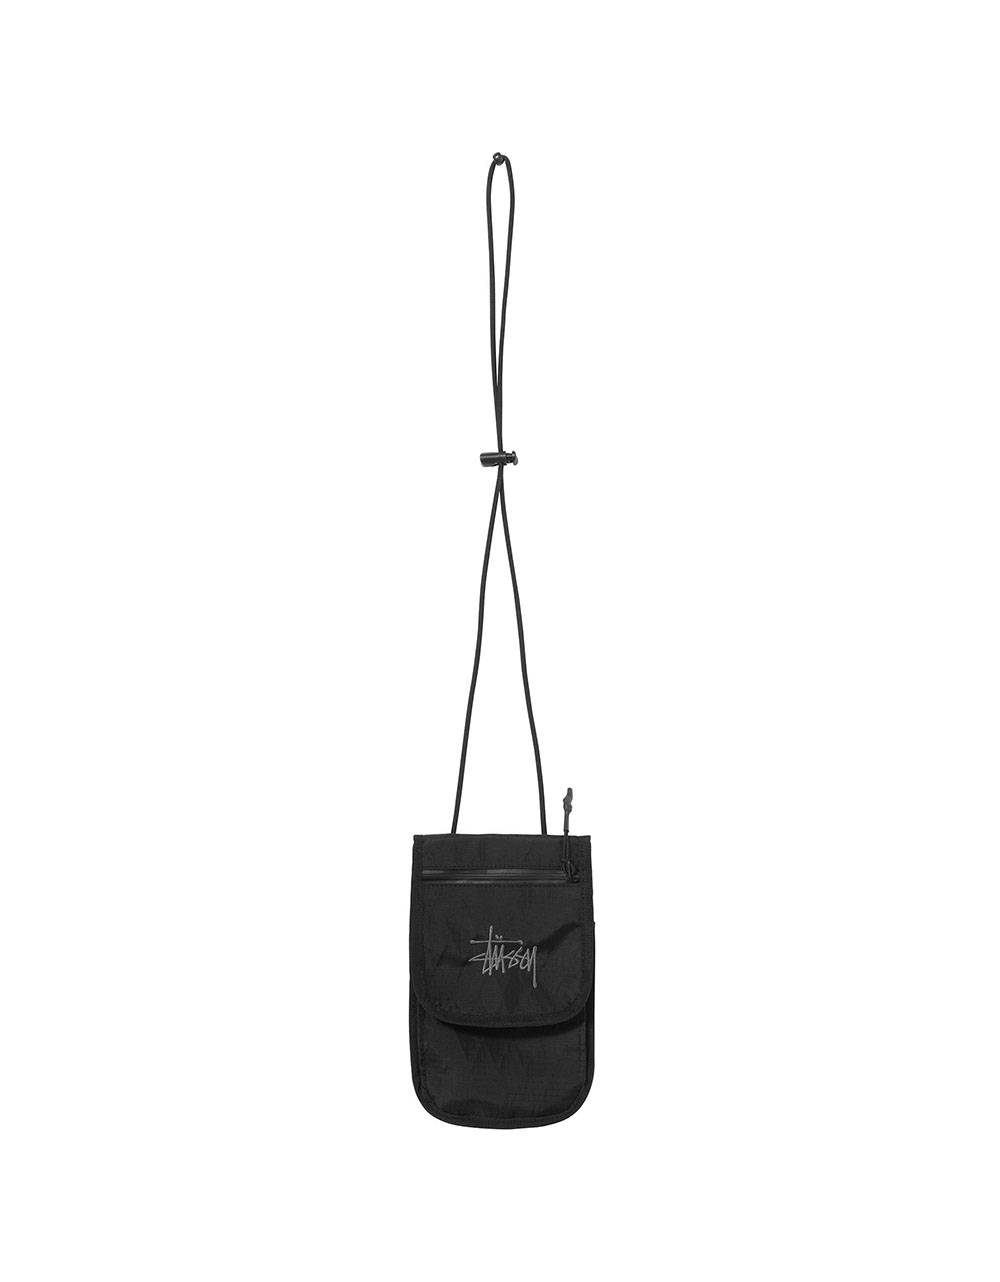 Stussy travel pouch bag - black Stussy Backpack 55,00 €